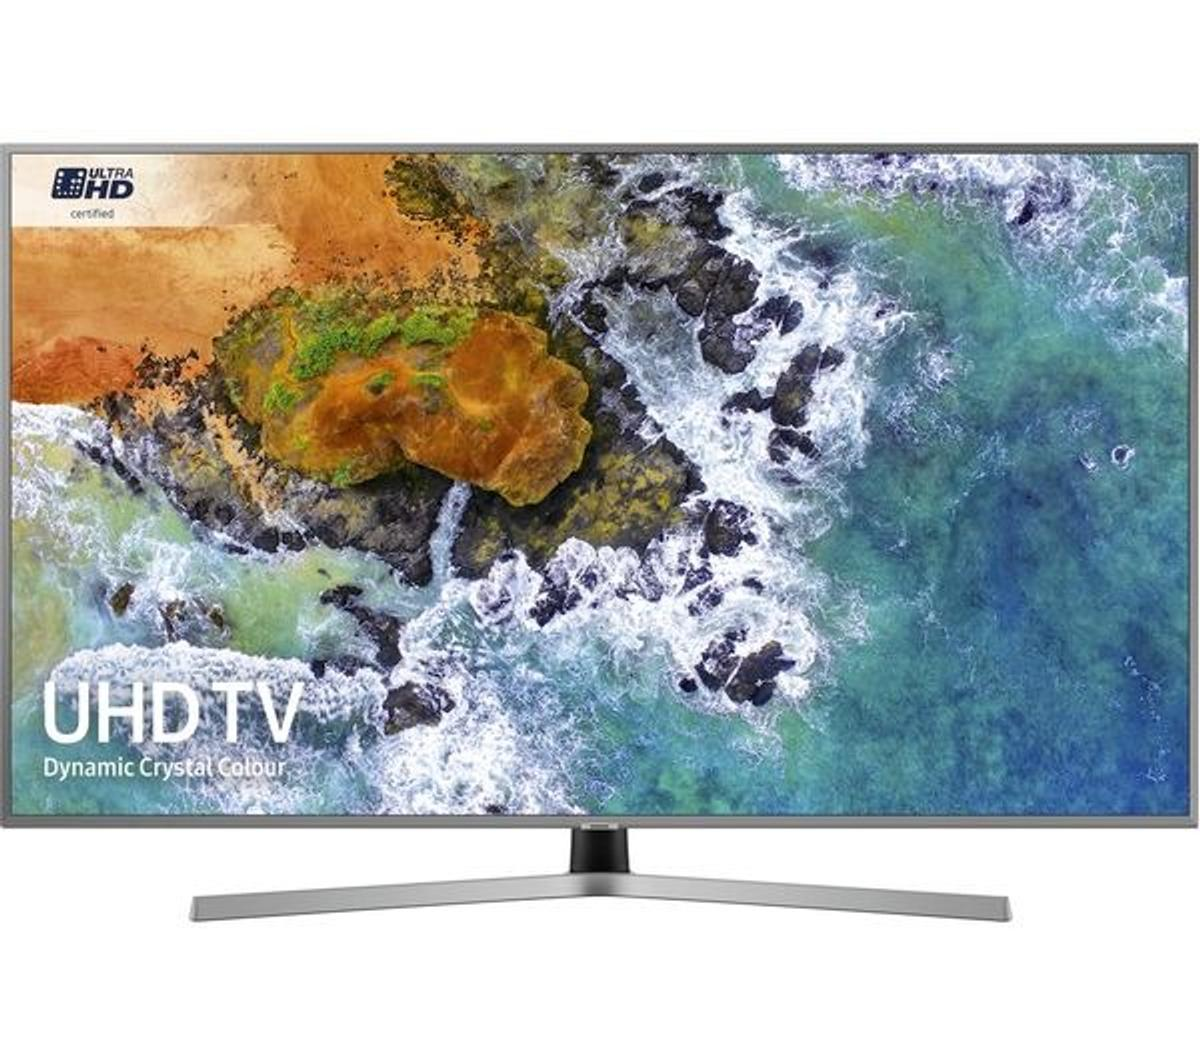 "top of the range 2019 latest SAMSUNG UE55RU7470UXXU 55"" Smart 4K Ultra HD HDR LED TV with Bixby 12 month warranty and option to extend the warranty free setup delivery is available  Supreme UHD Dimming for improved contrast Picture quality: 2000 PQI HDR: HDR10+ / Hybrid Log-Gamma (HLG) TV PLUS / Freesat HD HDMI 2.0b x 3"